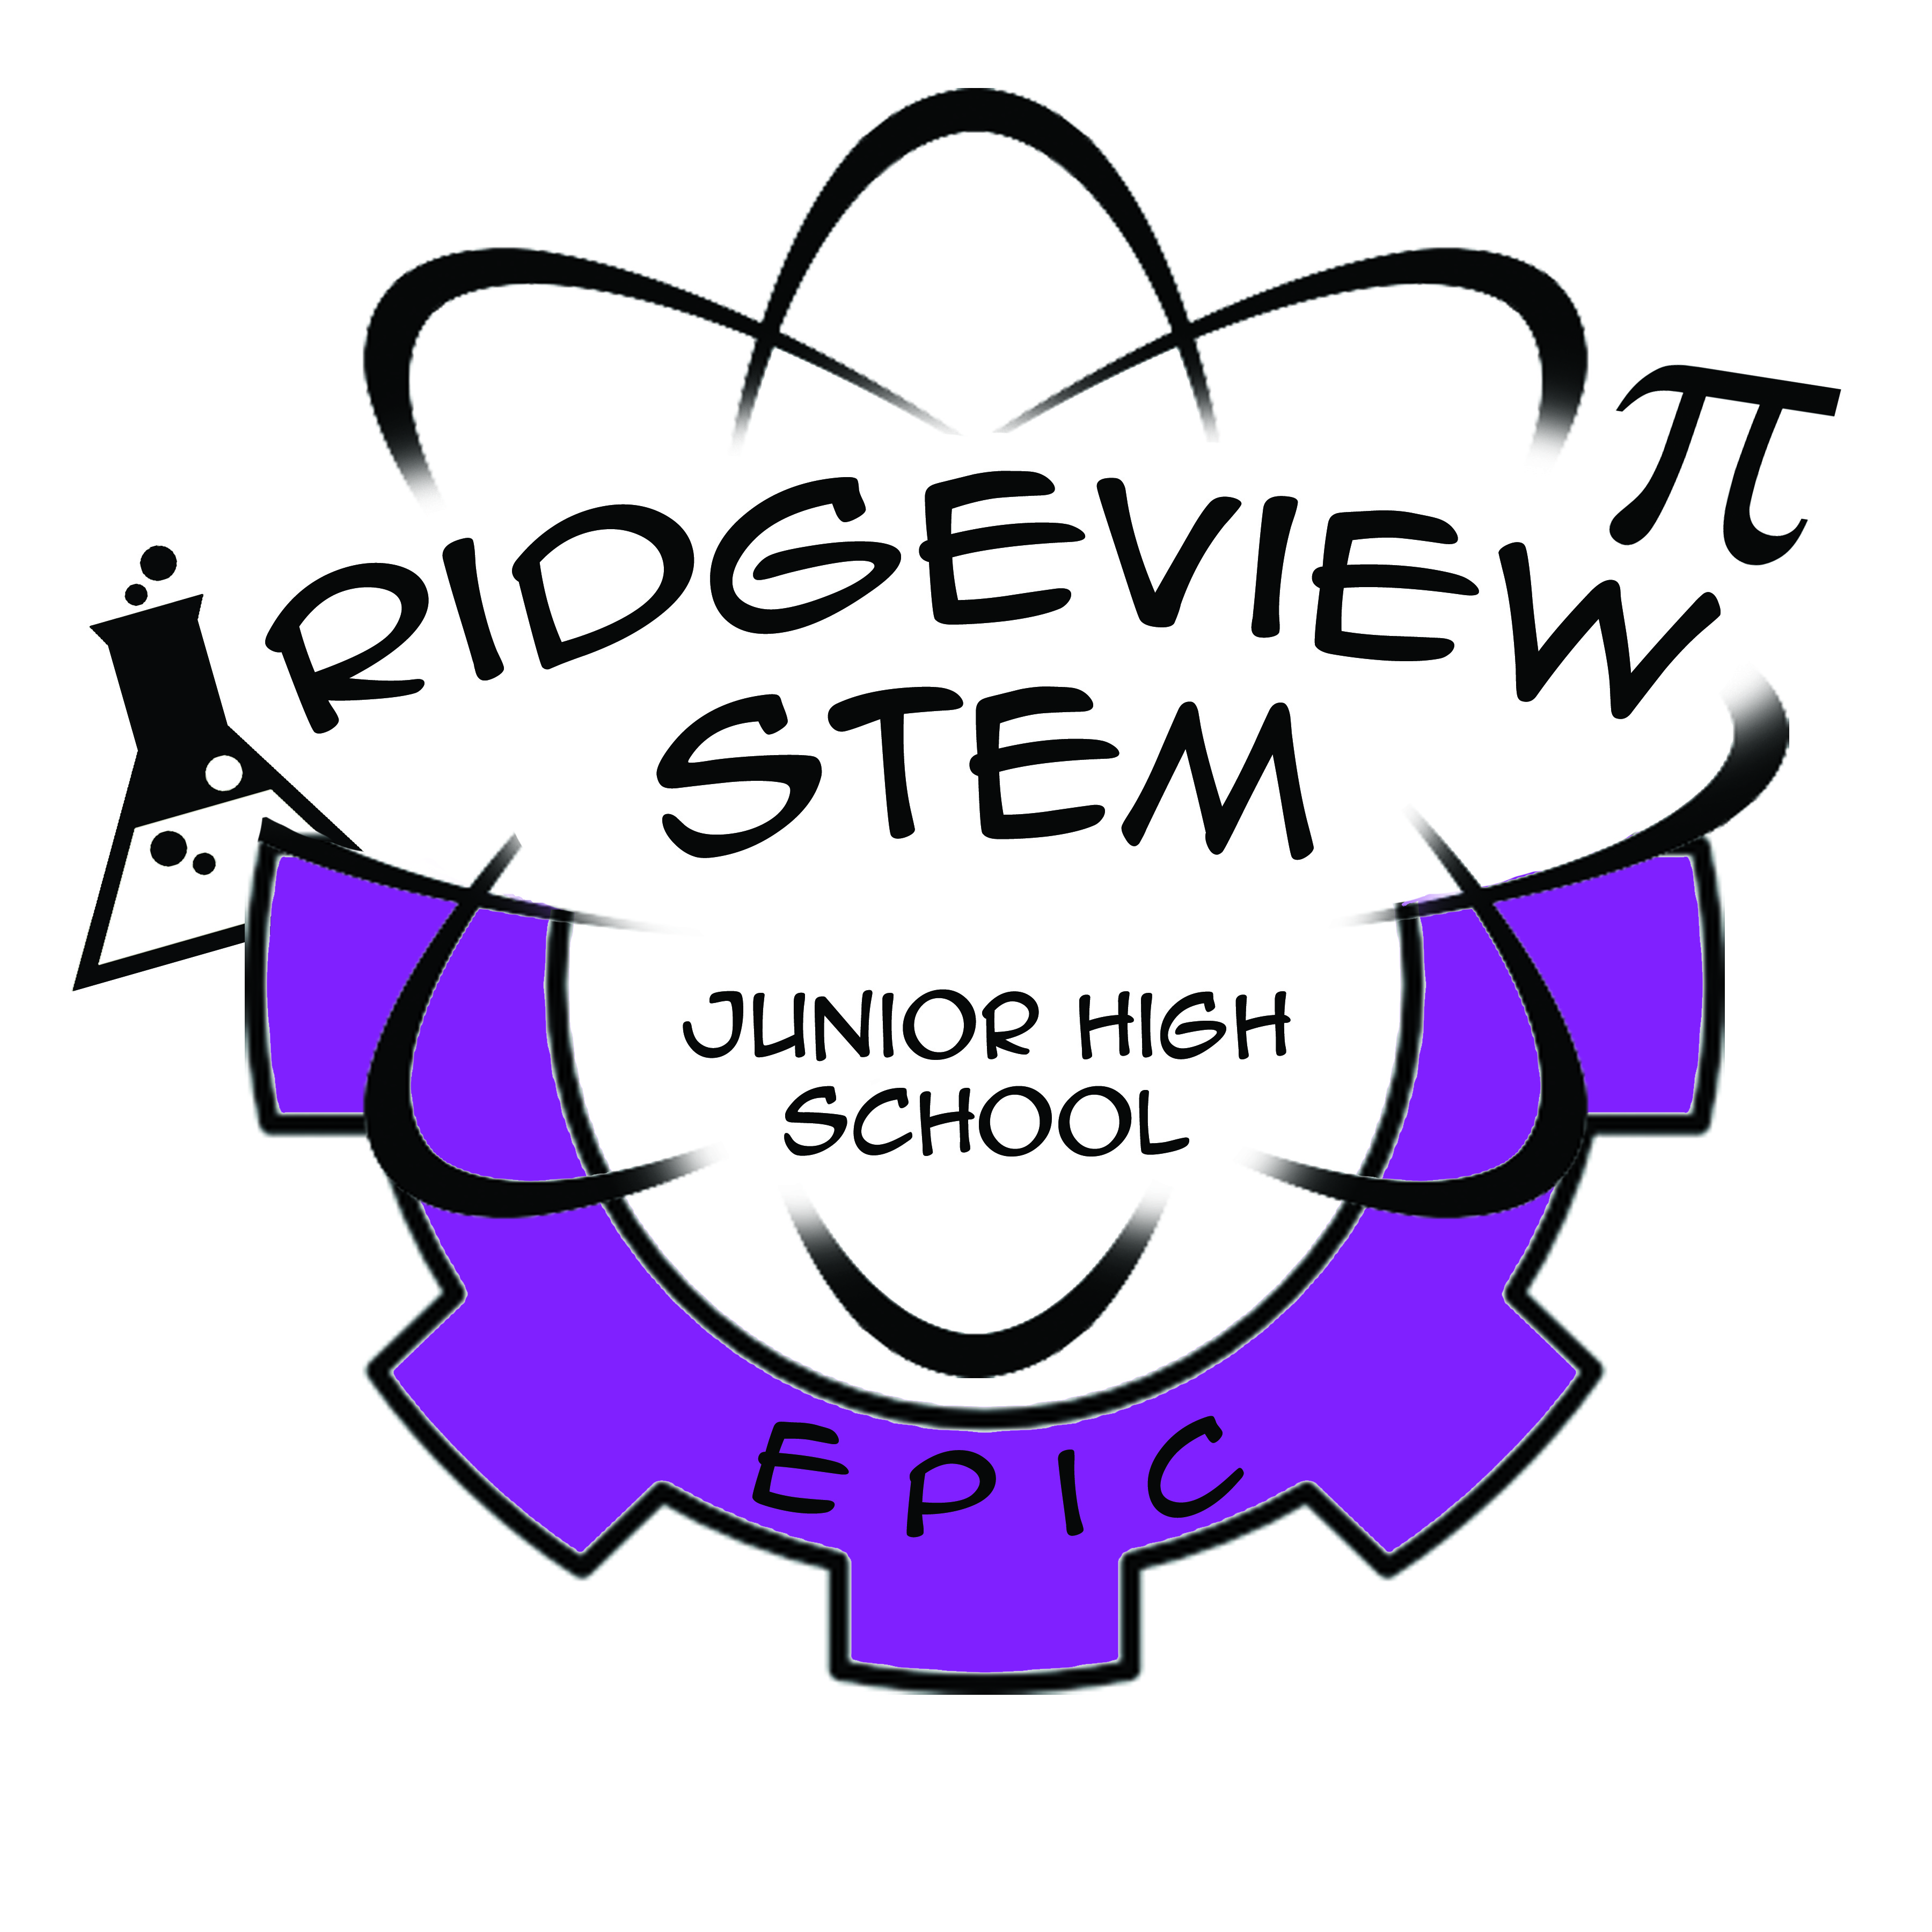 Ridgeview STEM Junior High logo